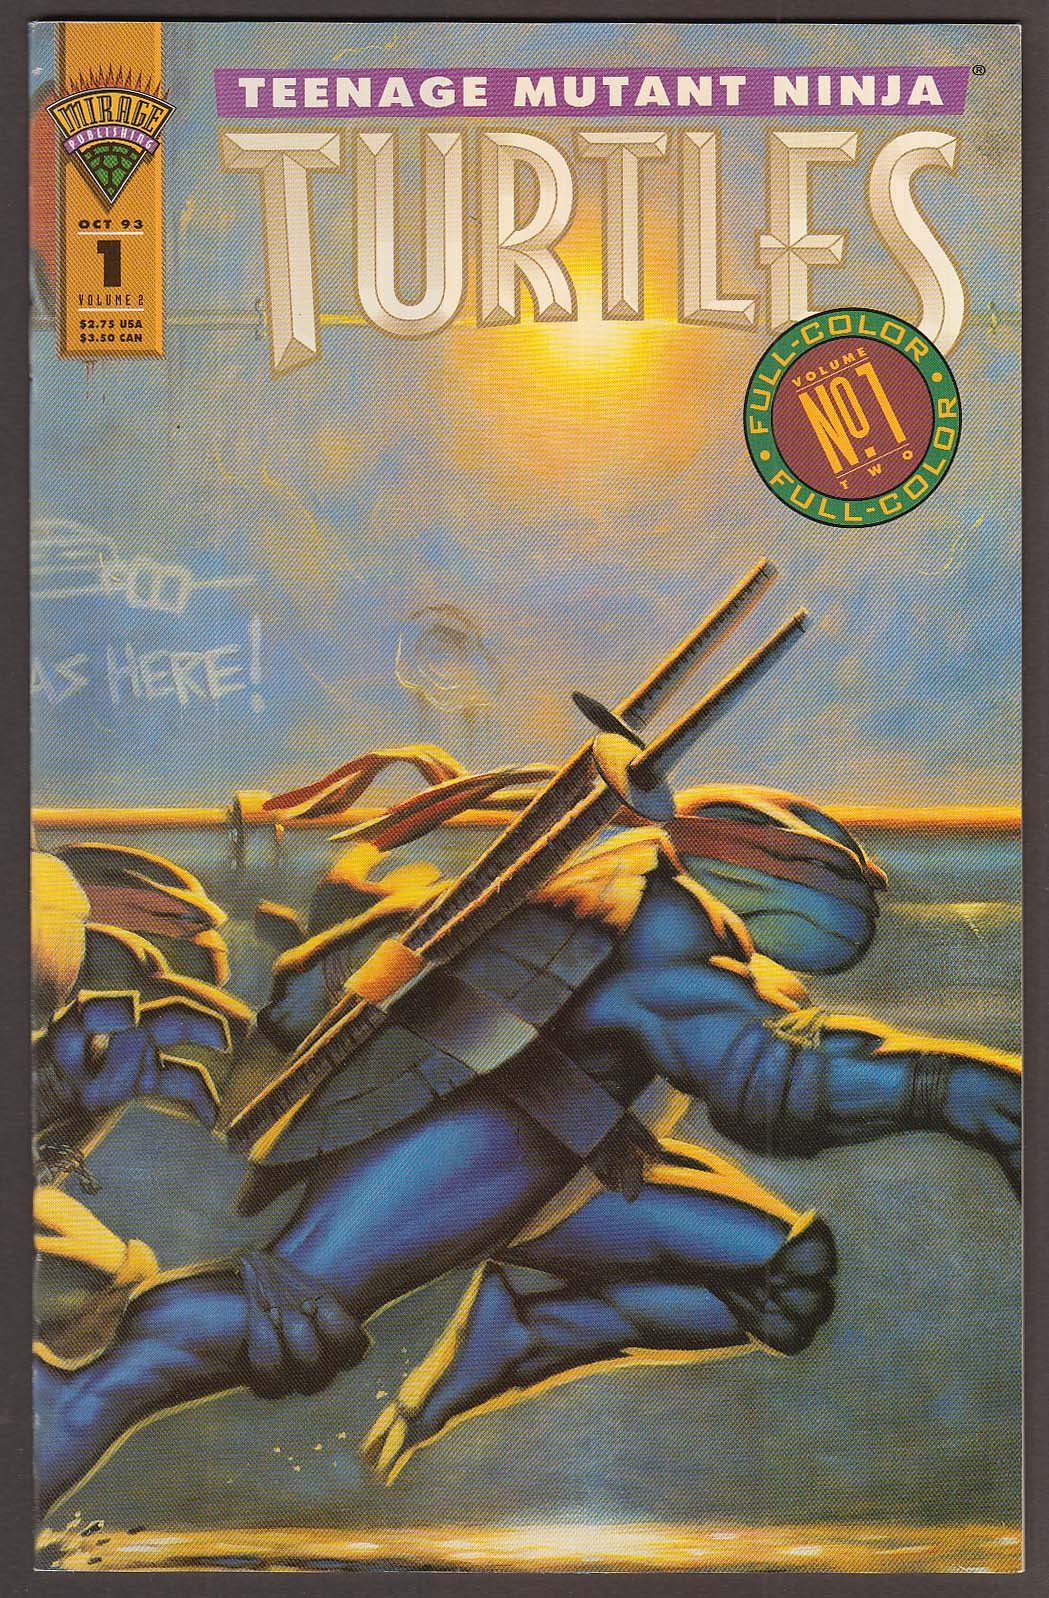 TEENAGE MUTANT NINJA TURTLES Vol 2 #1 Mirage comic book 10 1993